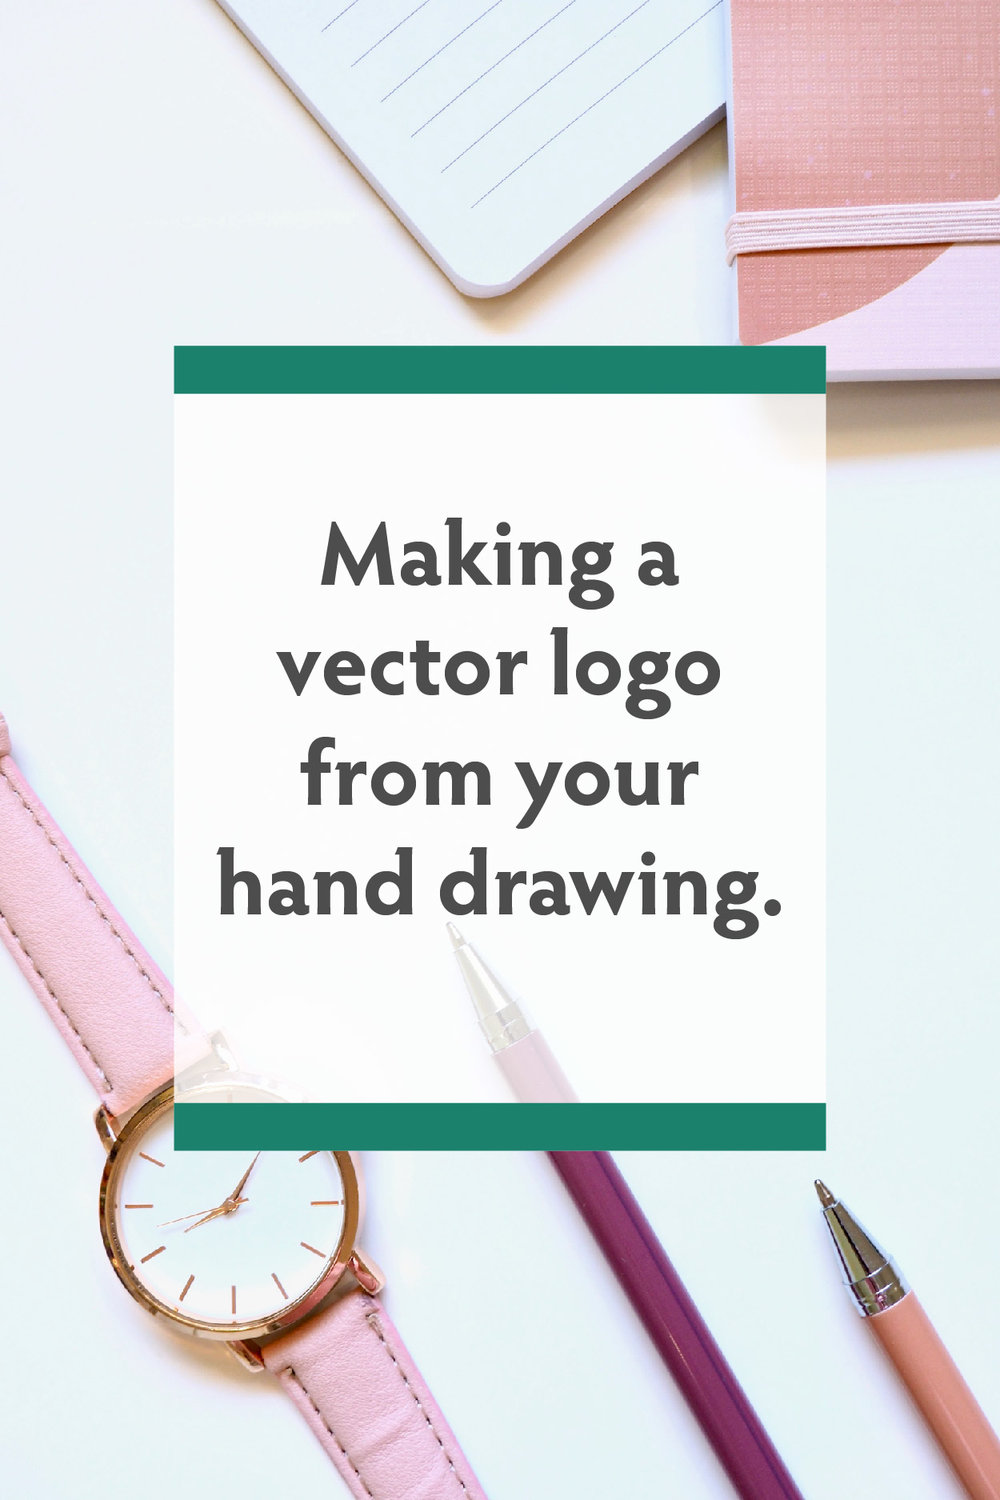 Making a vector logo from your hand drawing.jpg